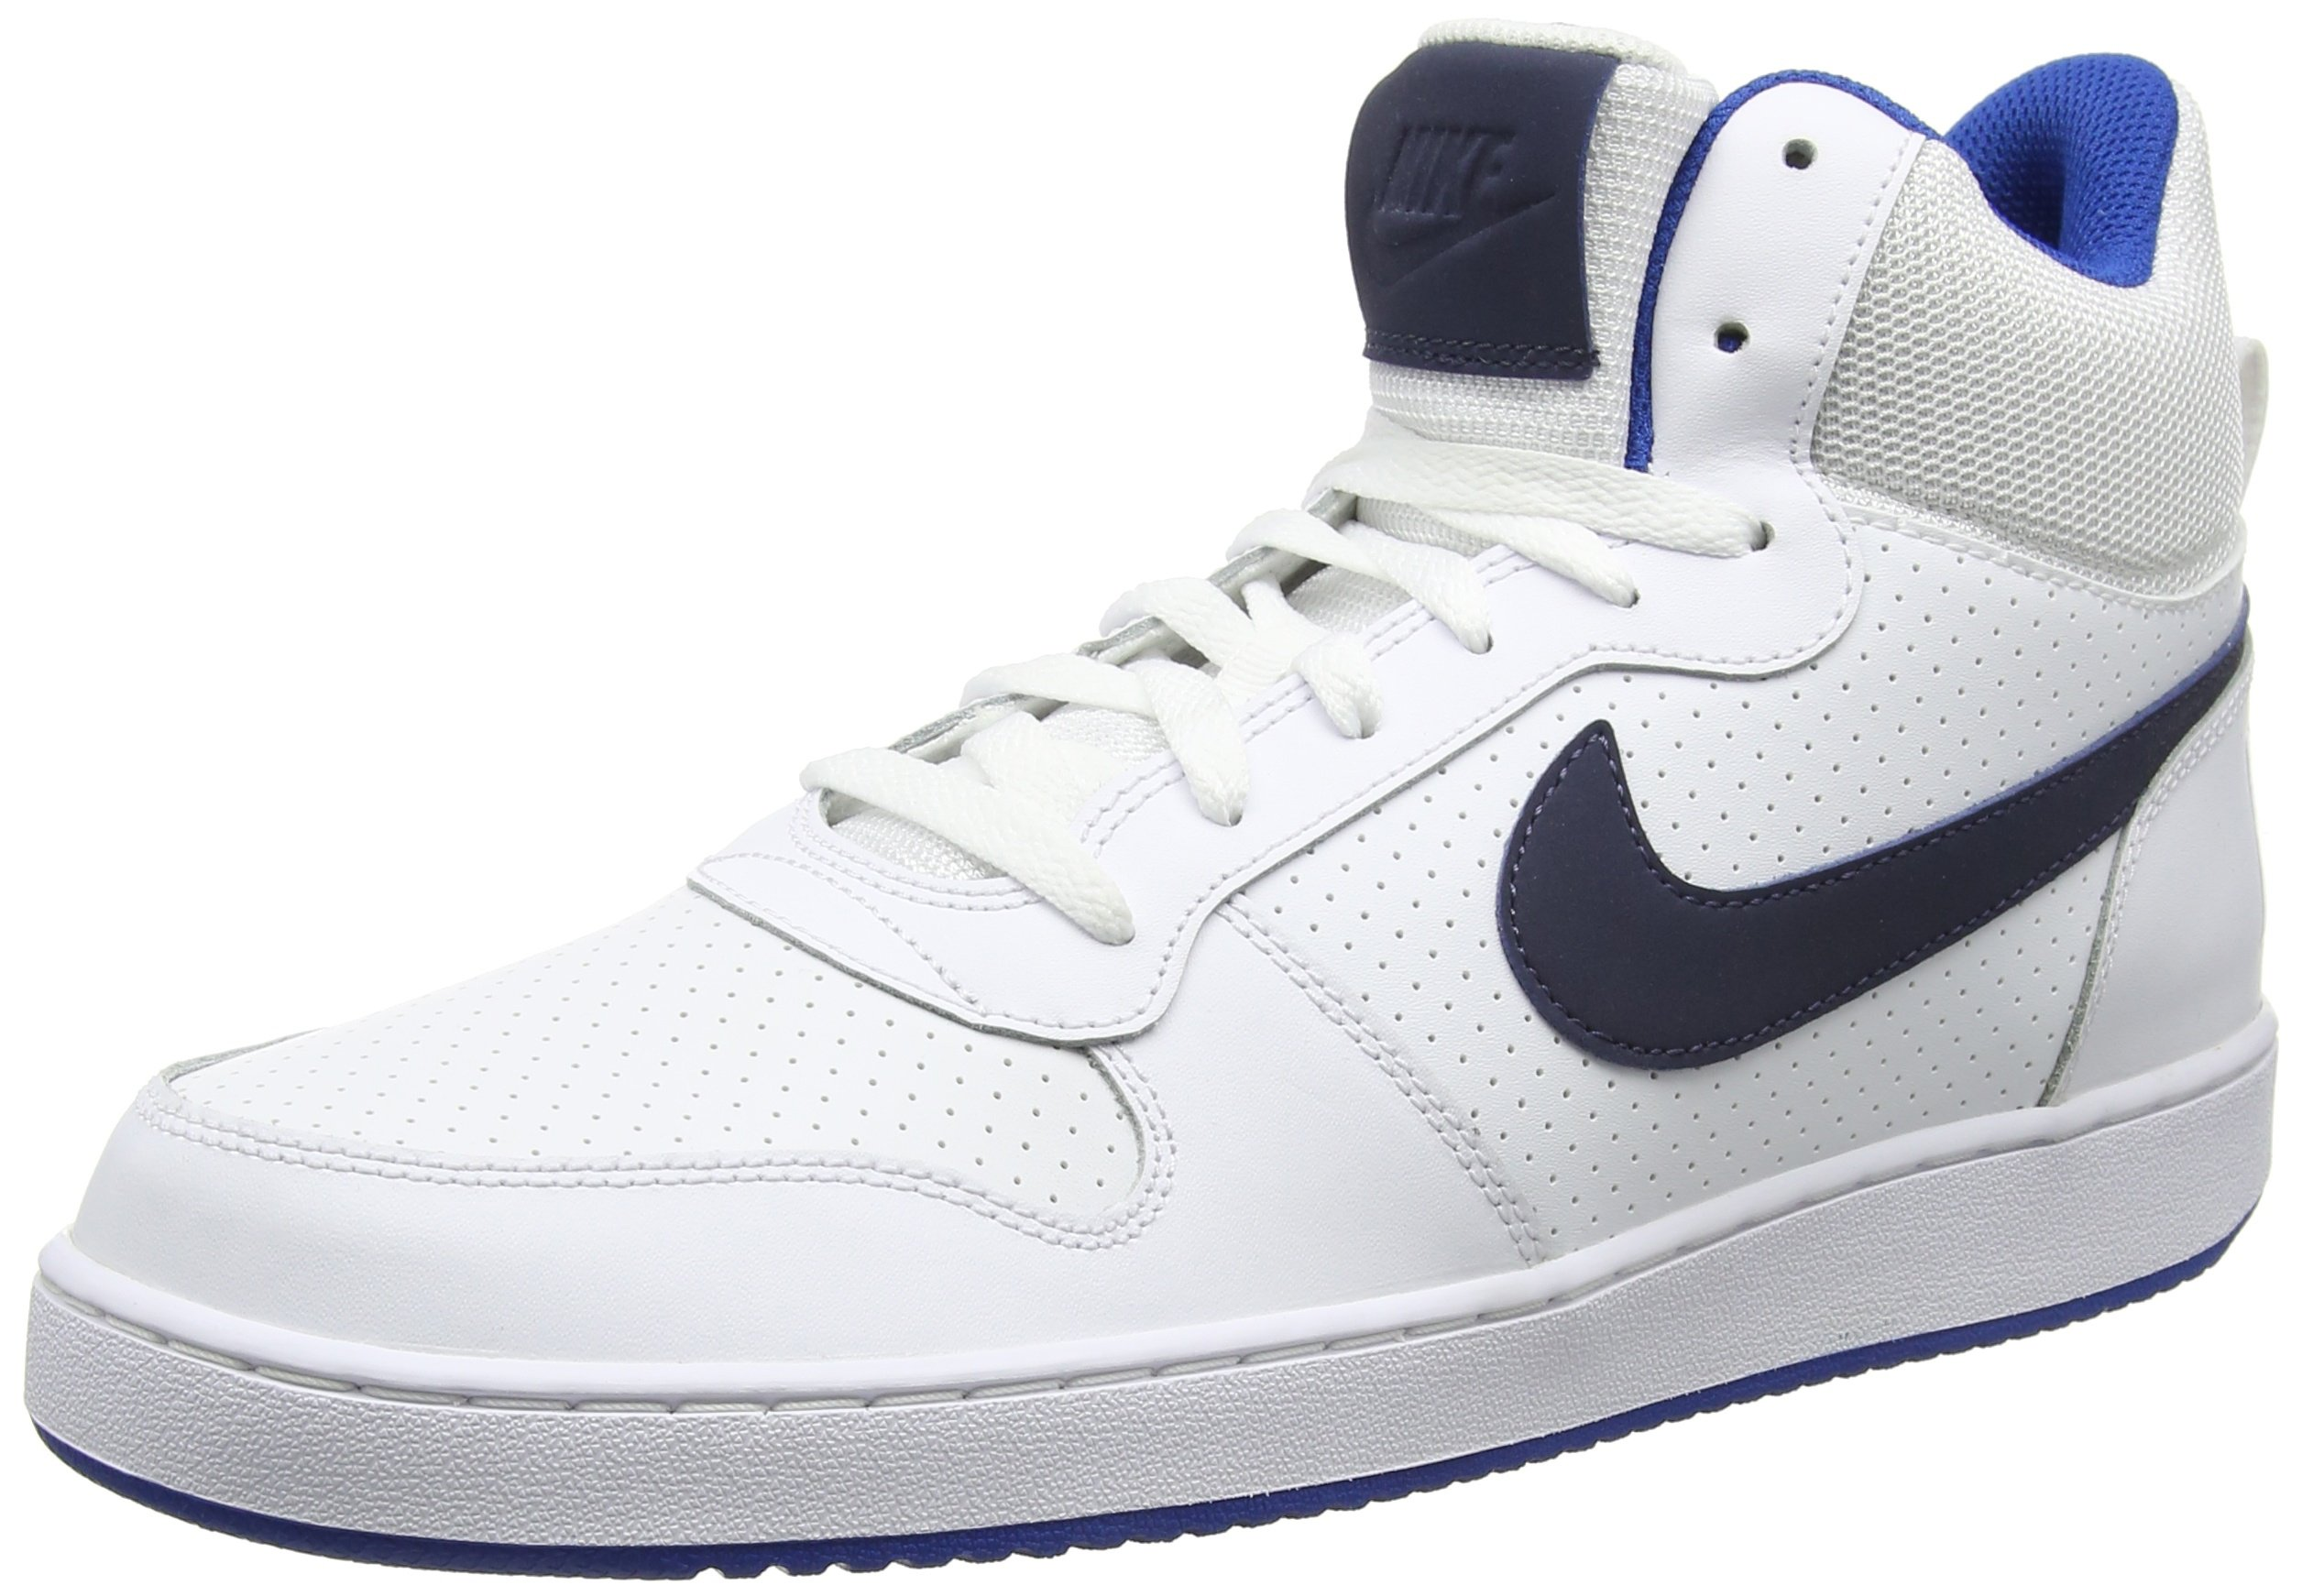 Influential Kent Adulthood  NIKE Men's Court Borough Mid Basketball Shoes - Buy Online in Cambodia. |  nike Products in Cambodia - See Prices, Reviews and Free Delivery over  27,000 ៛ | Desertcart